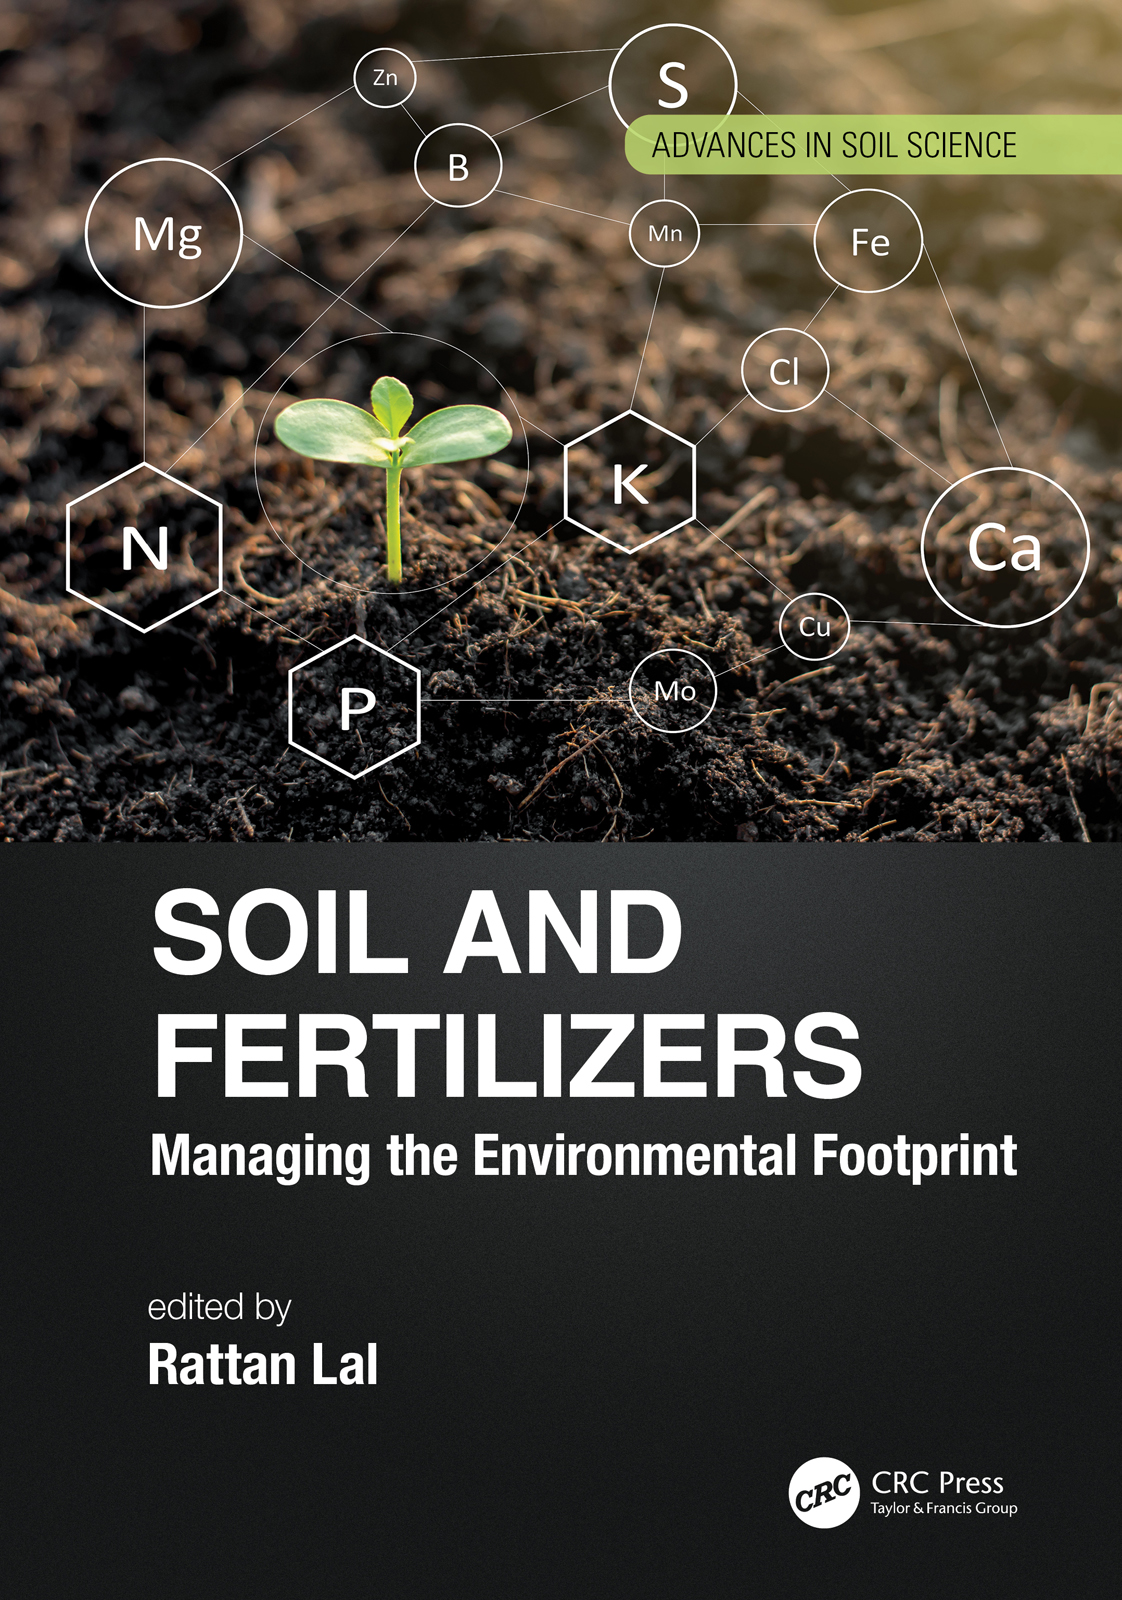 Reducing Emission of Greenhouse Gases from Fertilizer Use in India